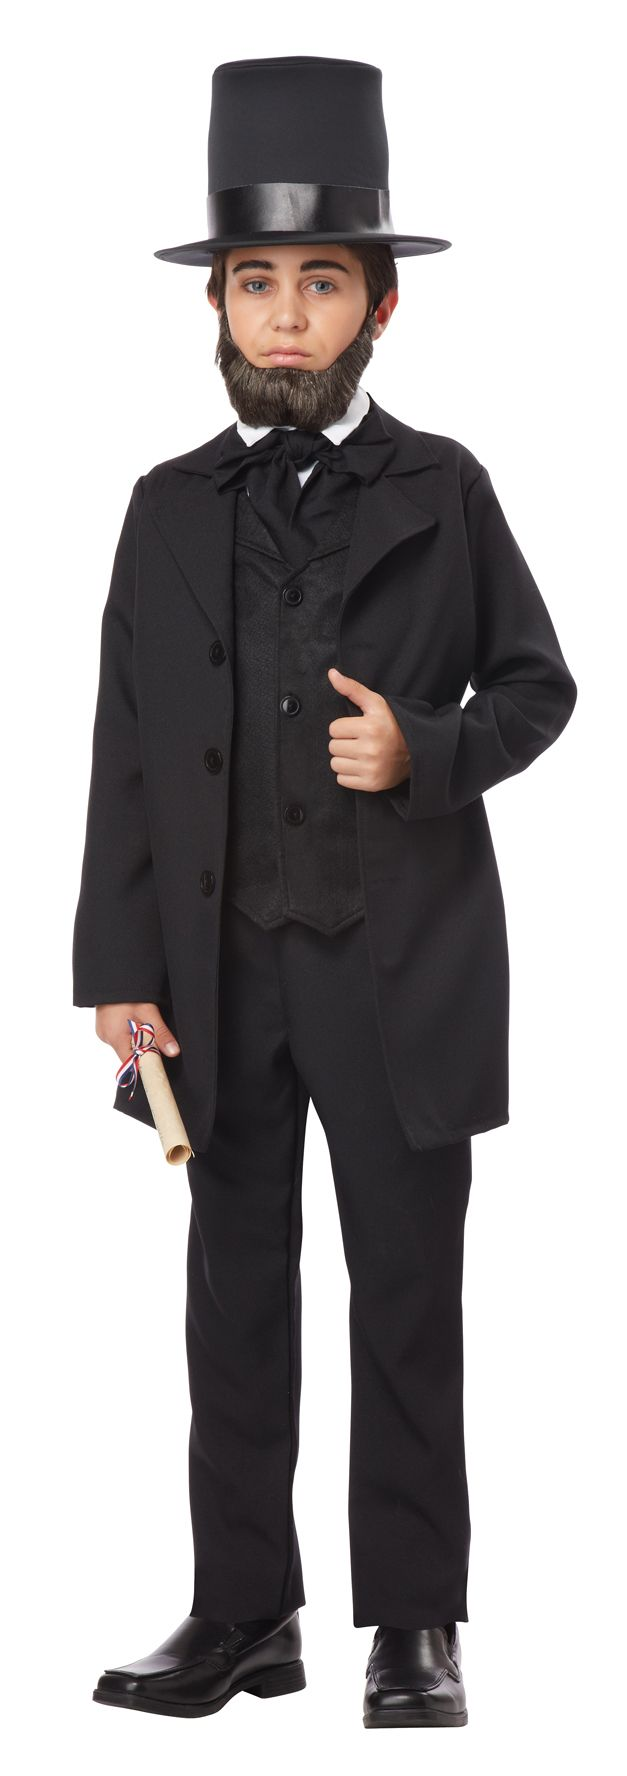 Abraham Lincoln Costumes @Fantasypartys